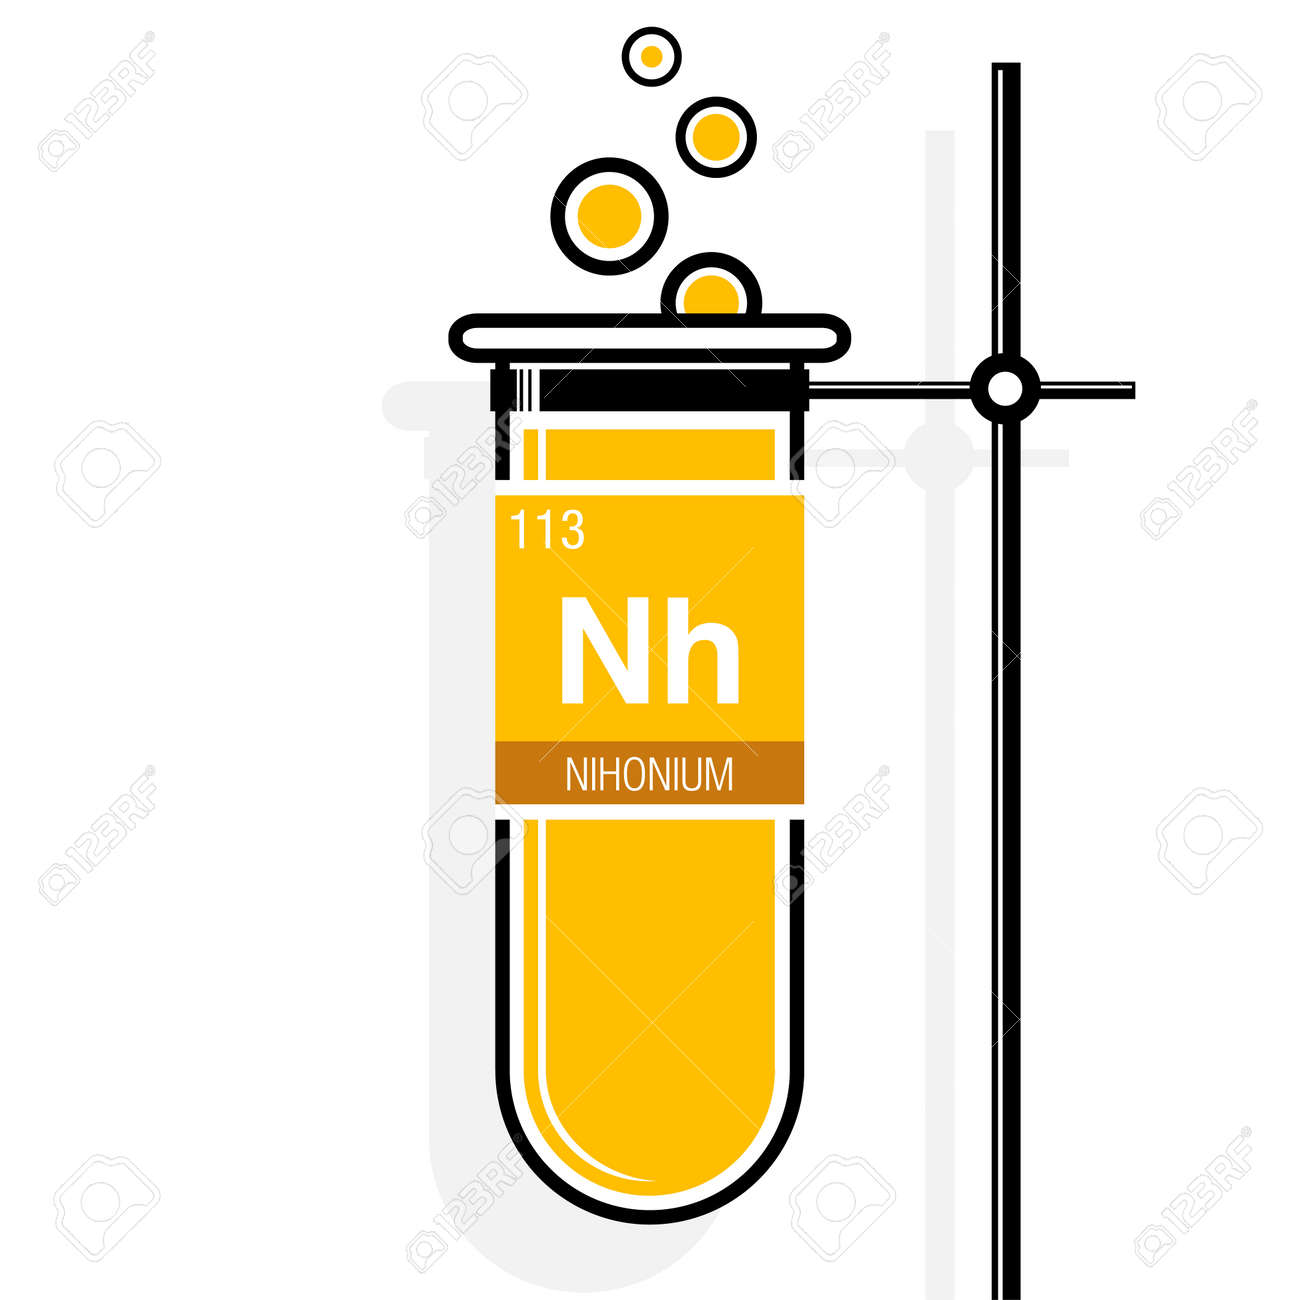 Nihonium symbol on label in a yellow test tube with holder element nihonium symbol on label in a yellow test tube with holder element number 113 of urtaz Image collections